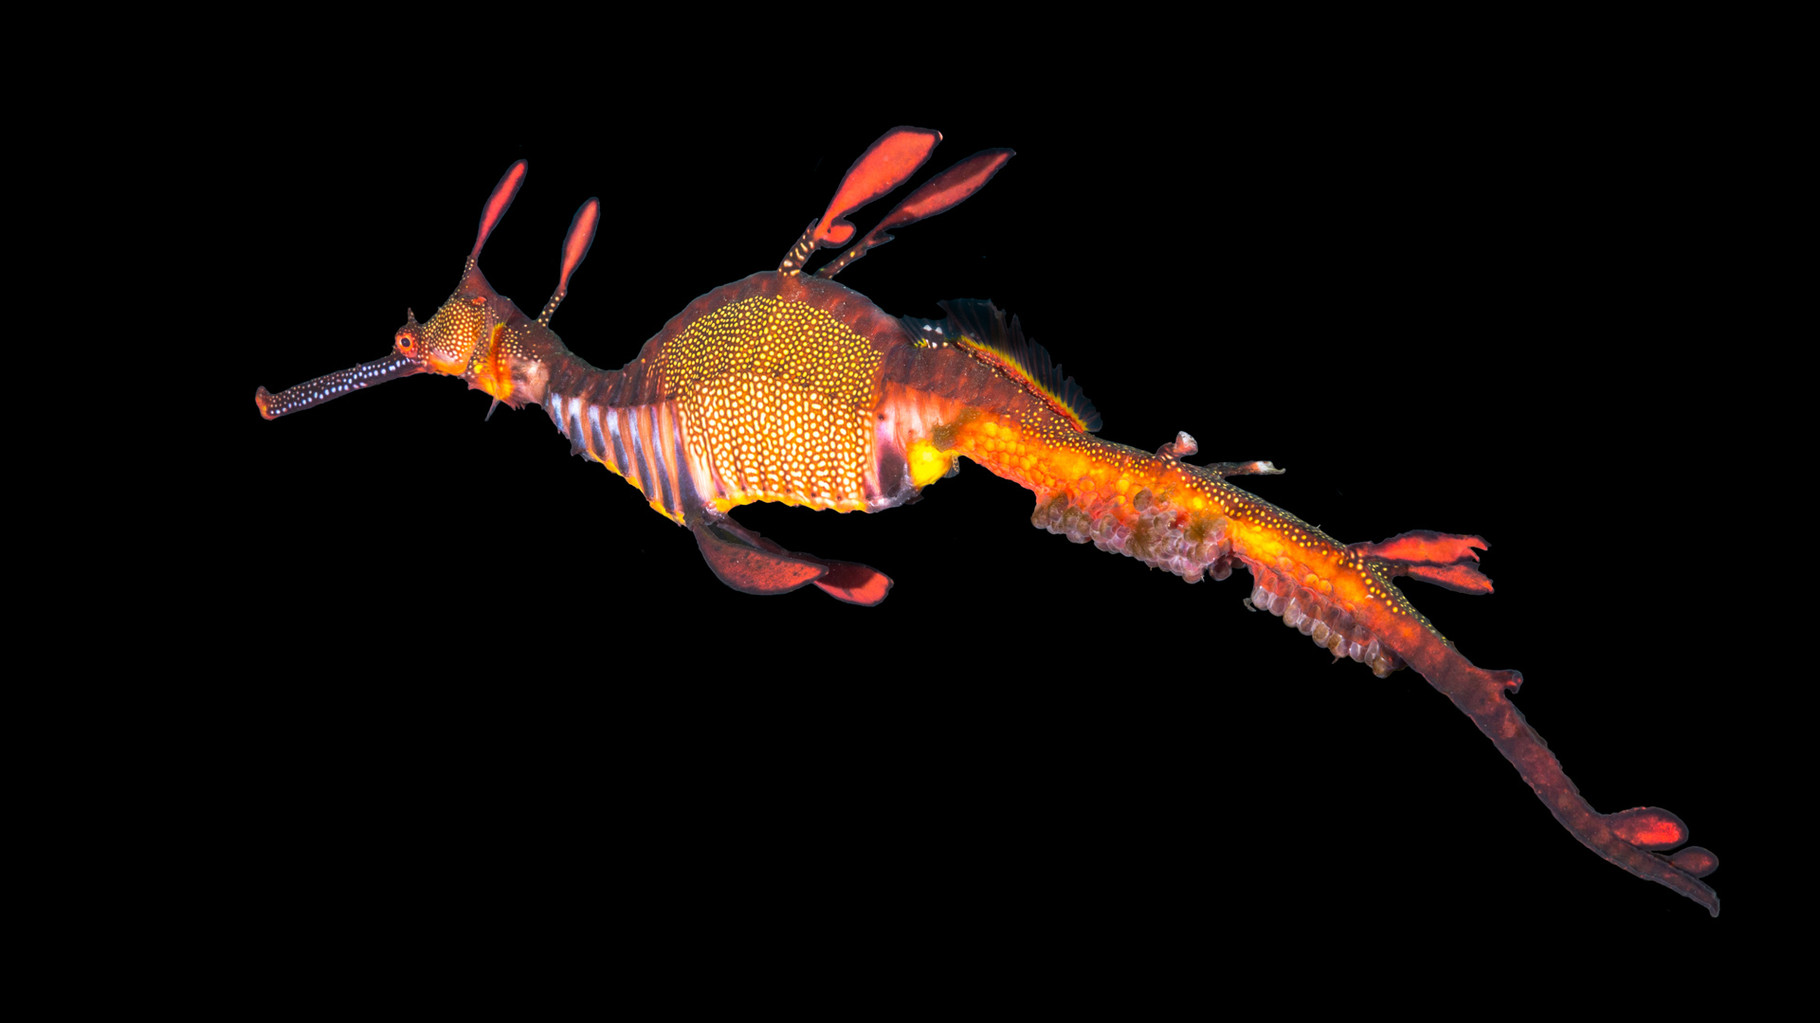 Male Weedy Sea Dragon carrying eggs (background erased with Photoshop)